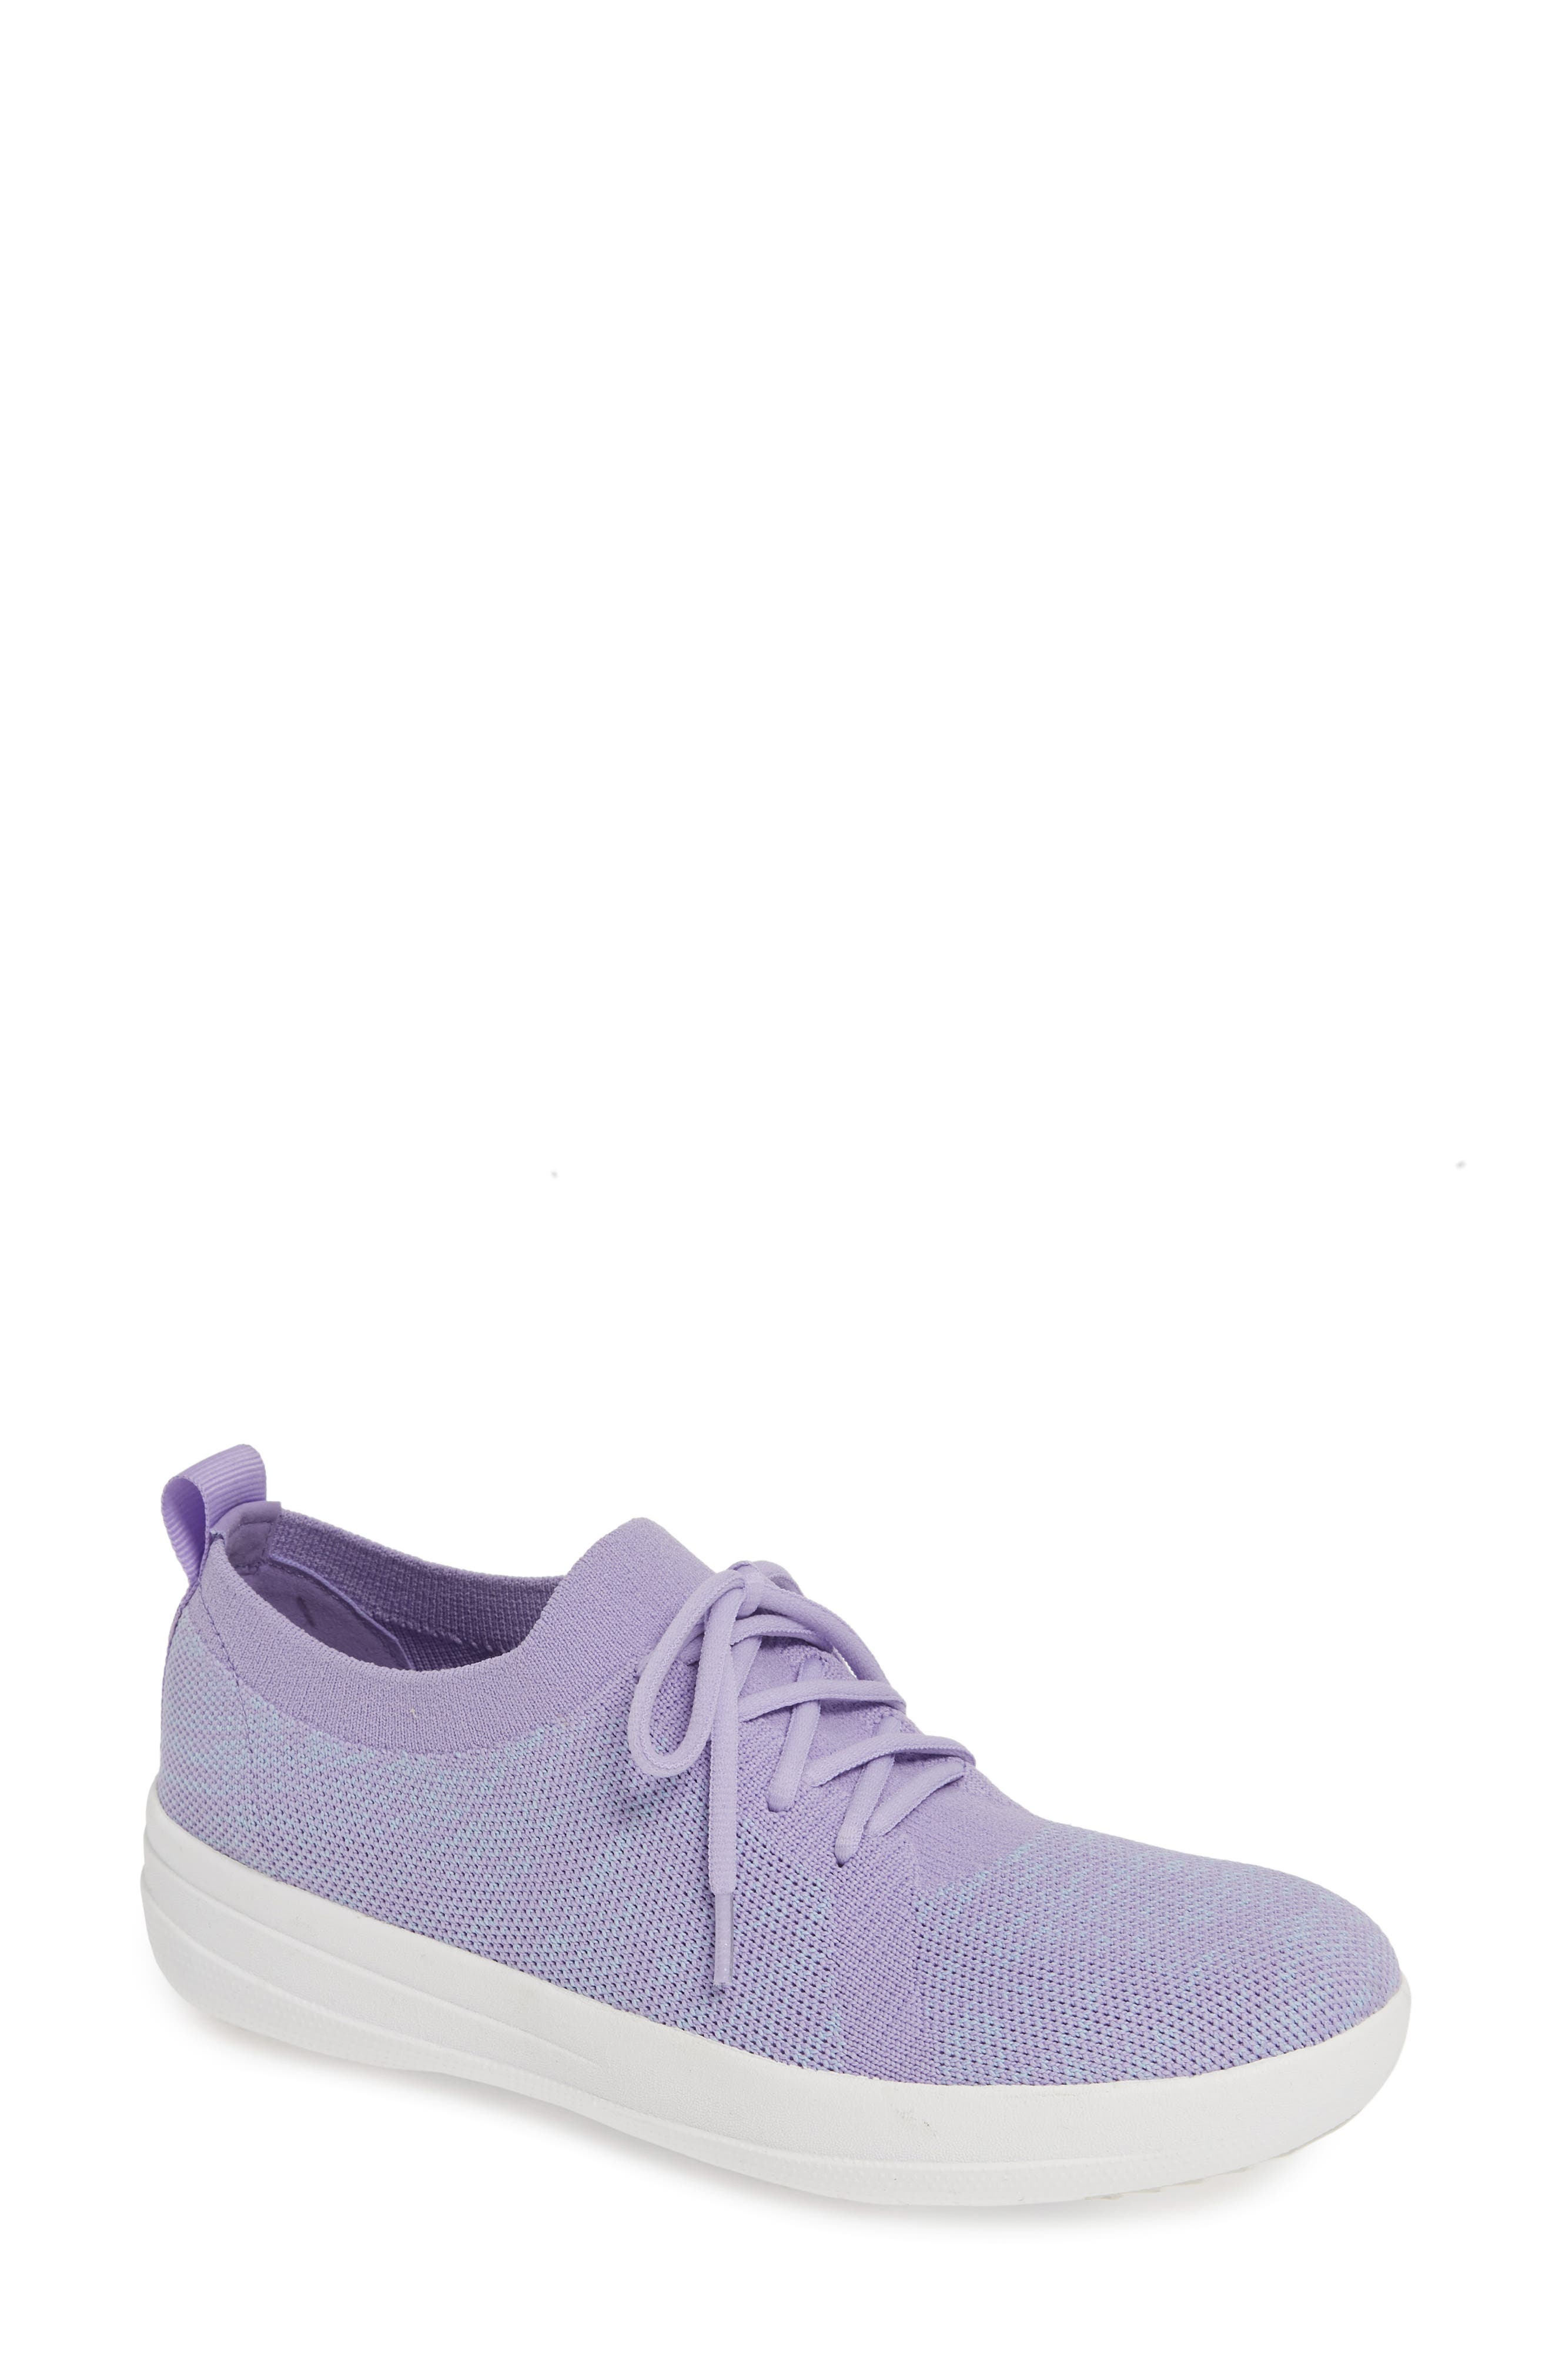 F-Sporty Uberknit<sup>™</sup> Sneaker,                             Main thumbnail 1, color,                             FROSTED LAVENDER MIX